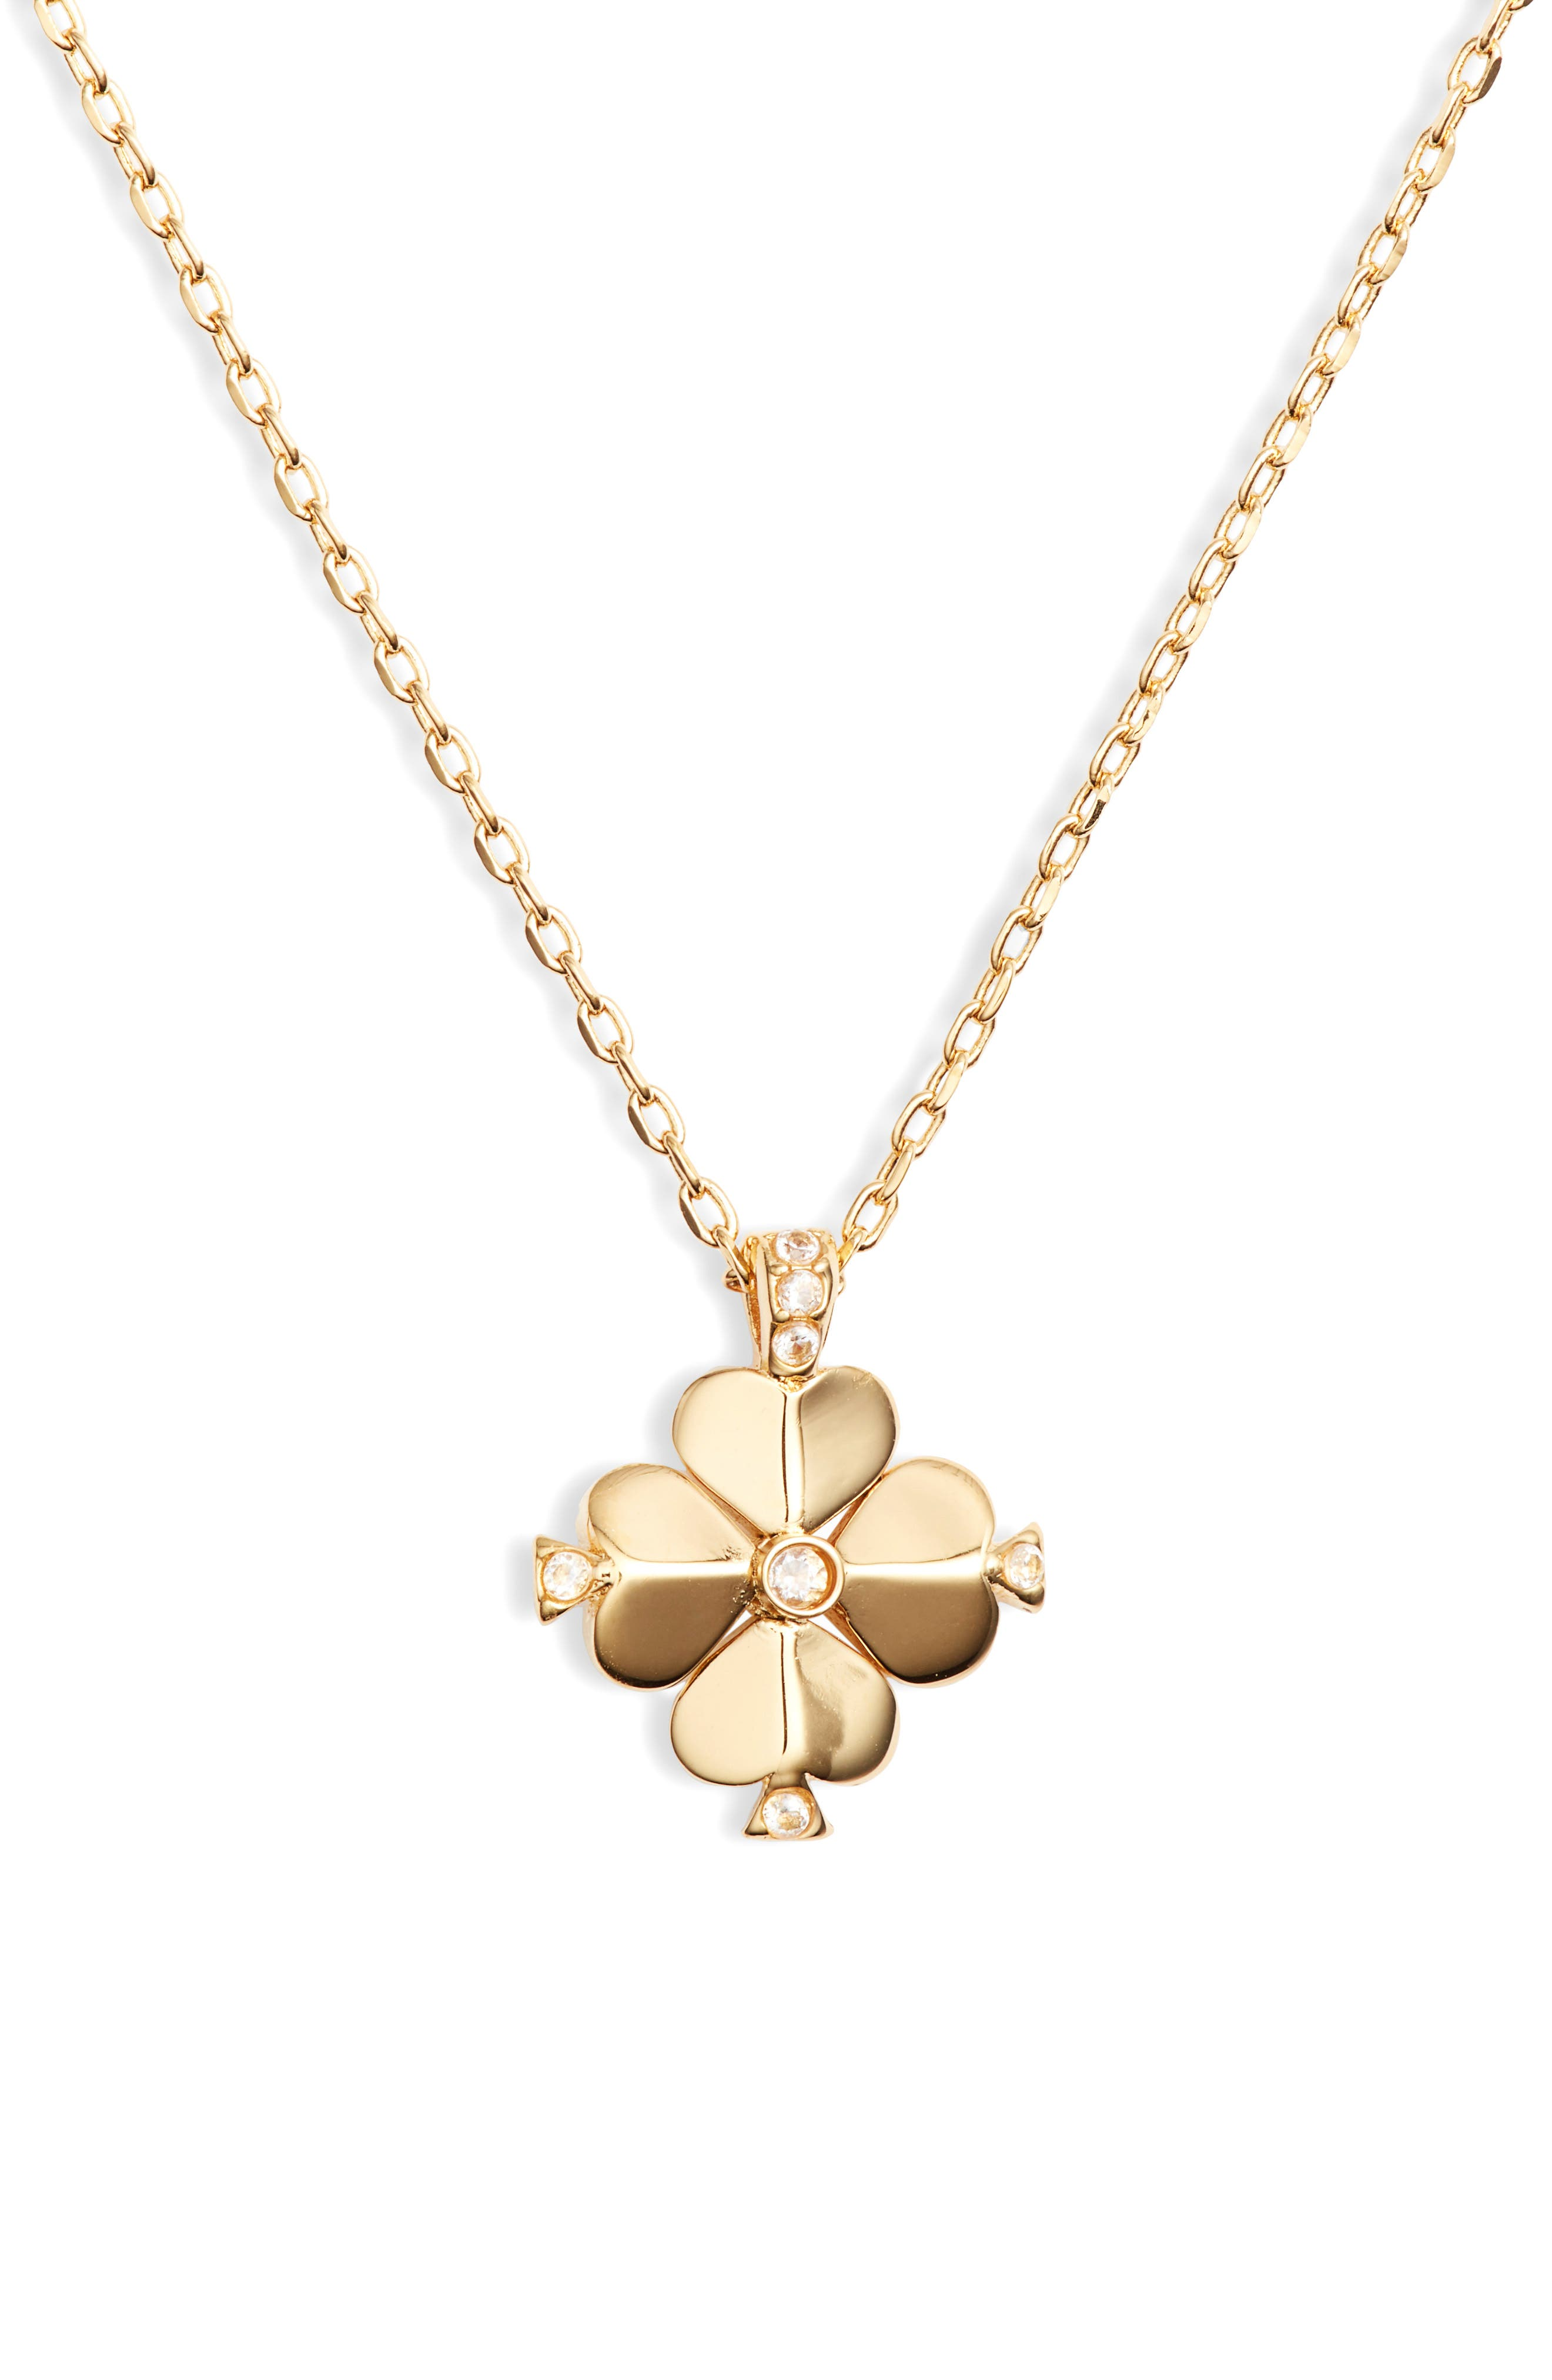 KATE SPADE NEW YORK,                             spade flower pendant necklace,                             Main thumbnail 1, color,                             CLEAR/ GOLD